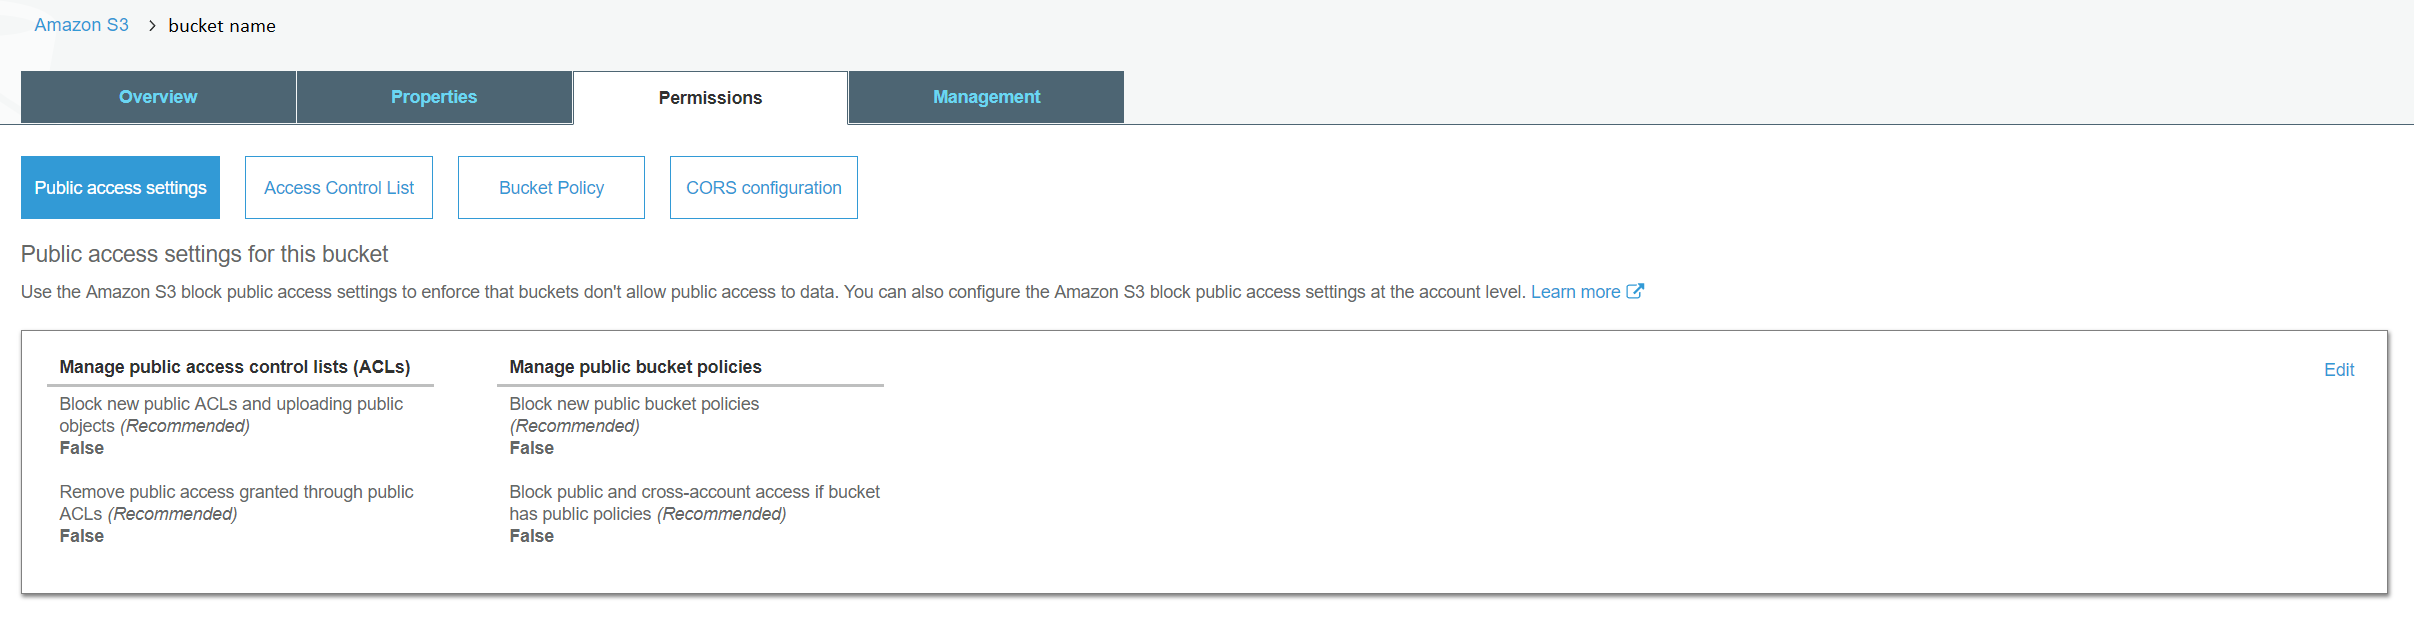 Review on s3 Bucket latest Security feature — Public Access